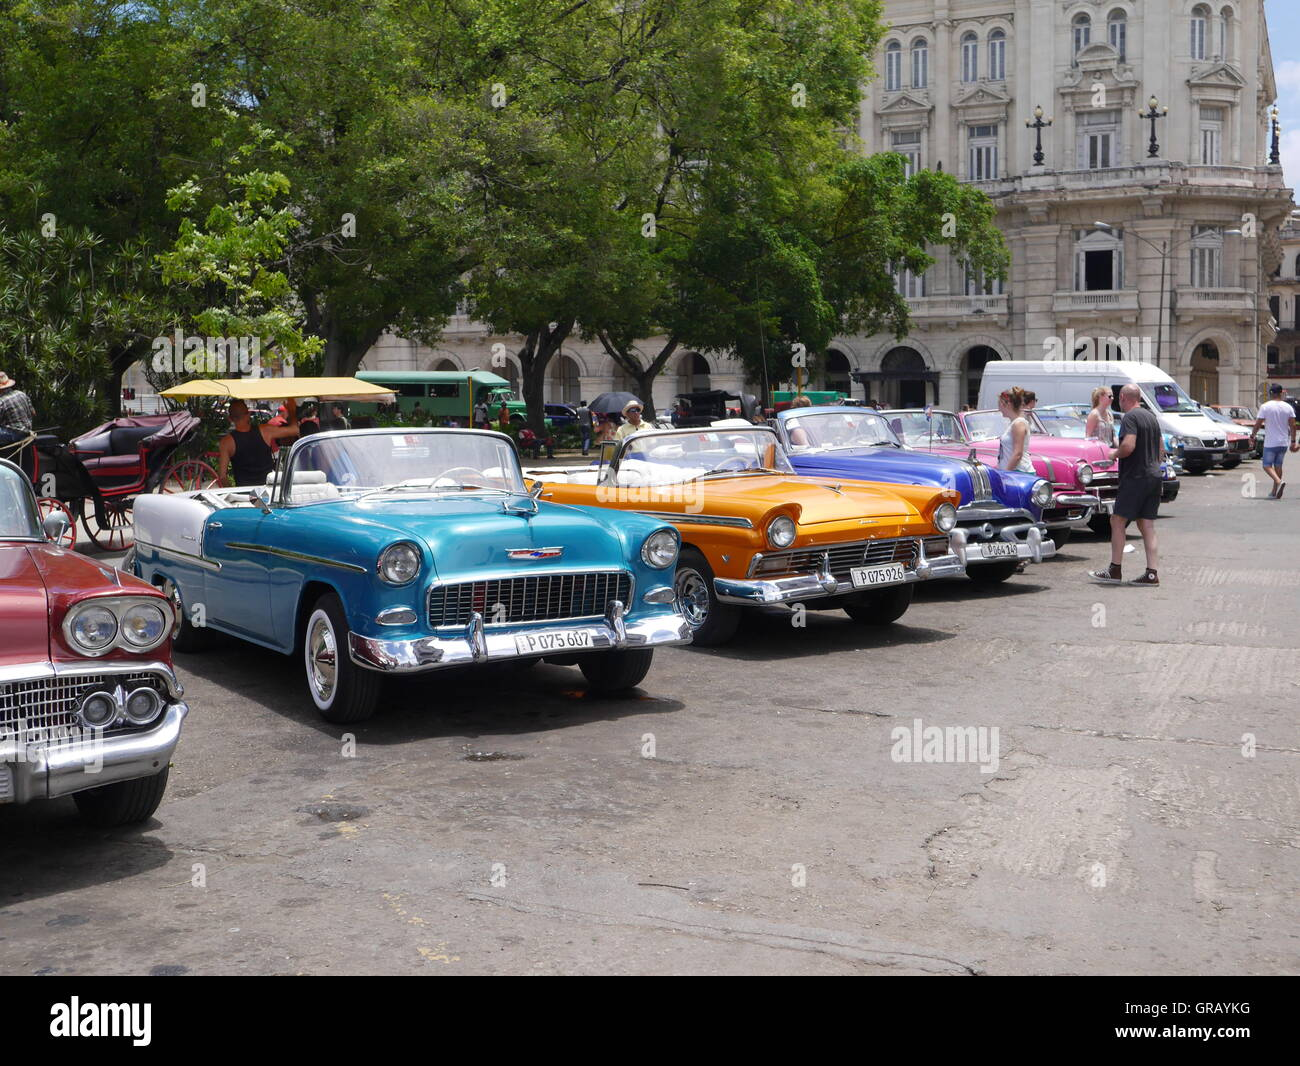 Old Fashioned Cars Stock Photos & Old Fashioned Cars Stock Images ...